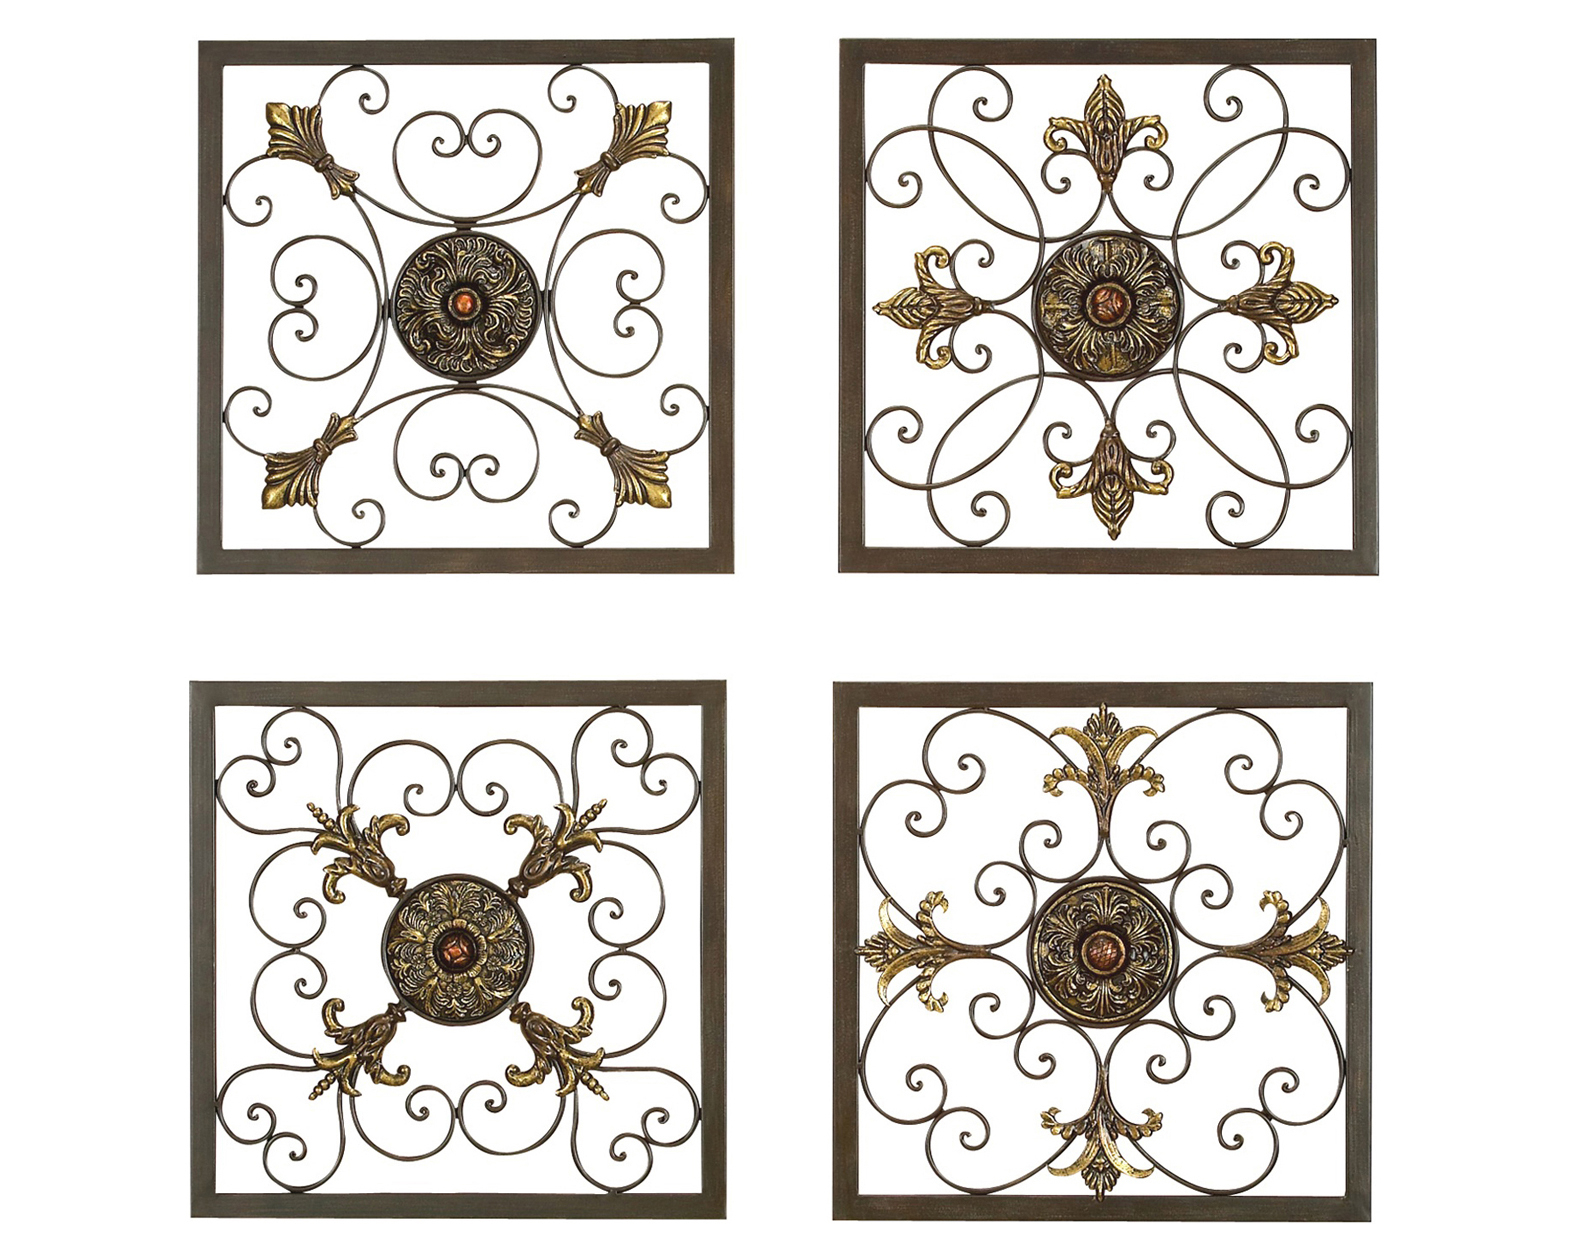 Tuscan Grilles Metal Wall Panels Set Art As Decor Decoration Intended For Scroll Panel Wall Decor (View 17 of 30)